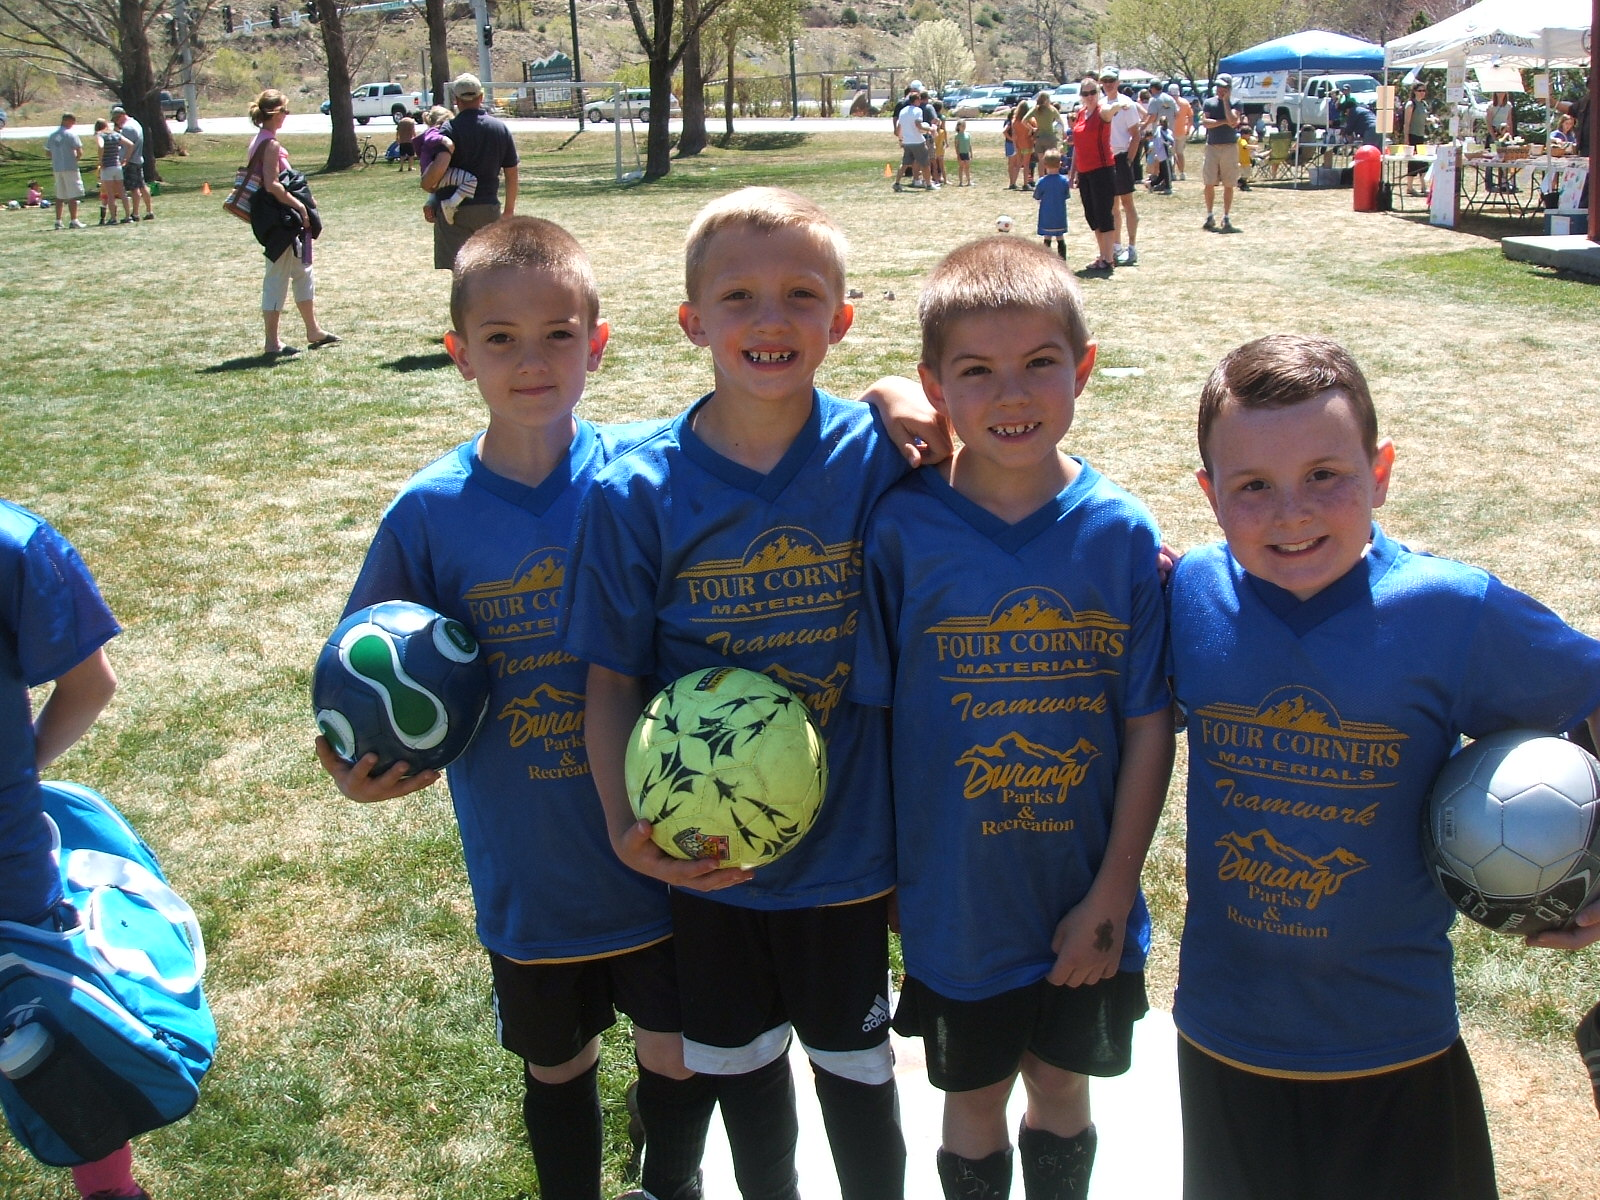 Youth Soccer Team mates